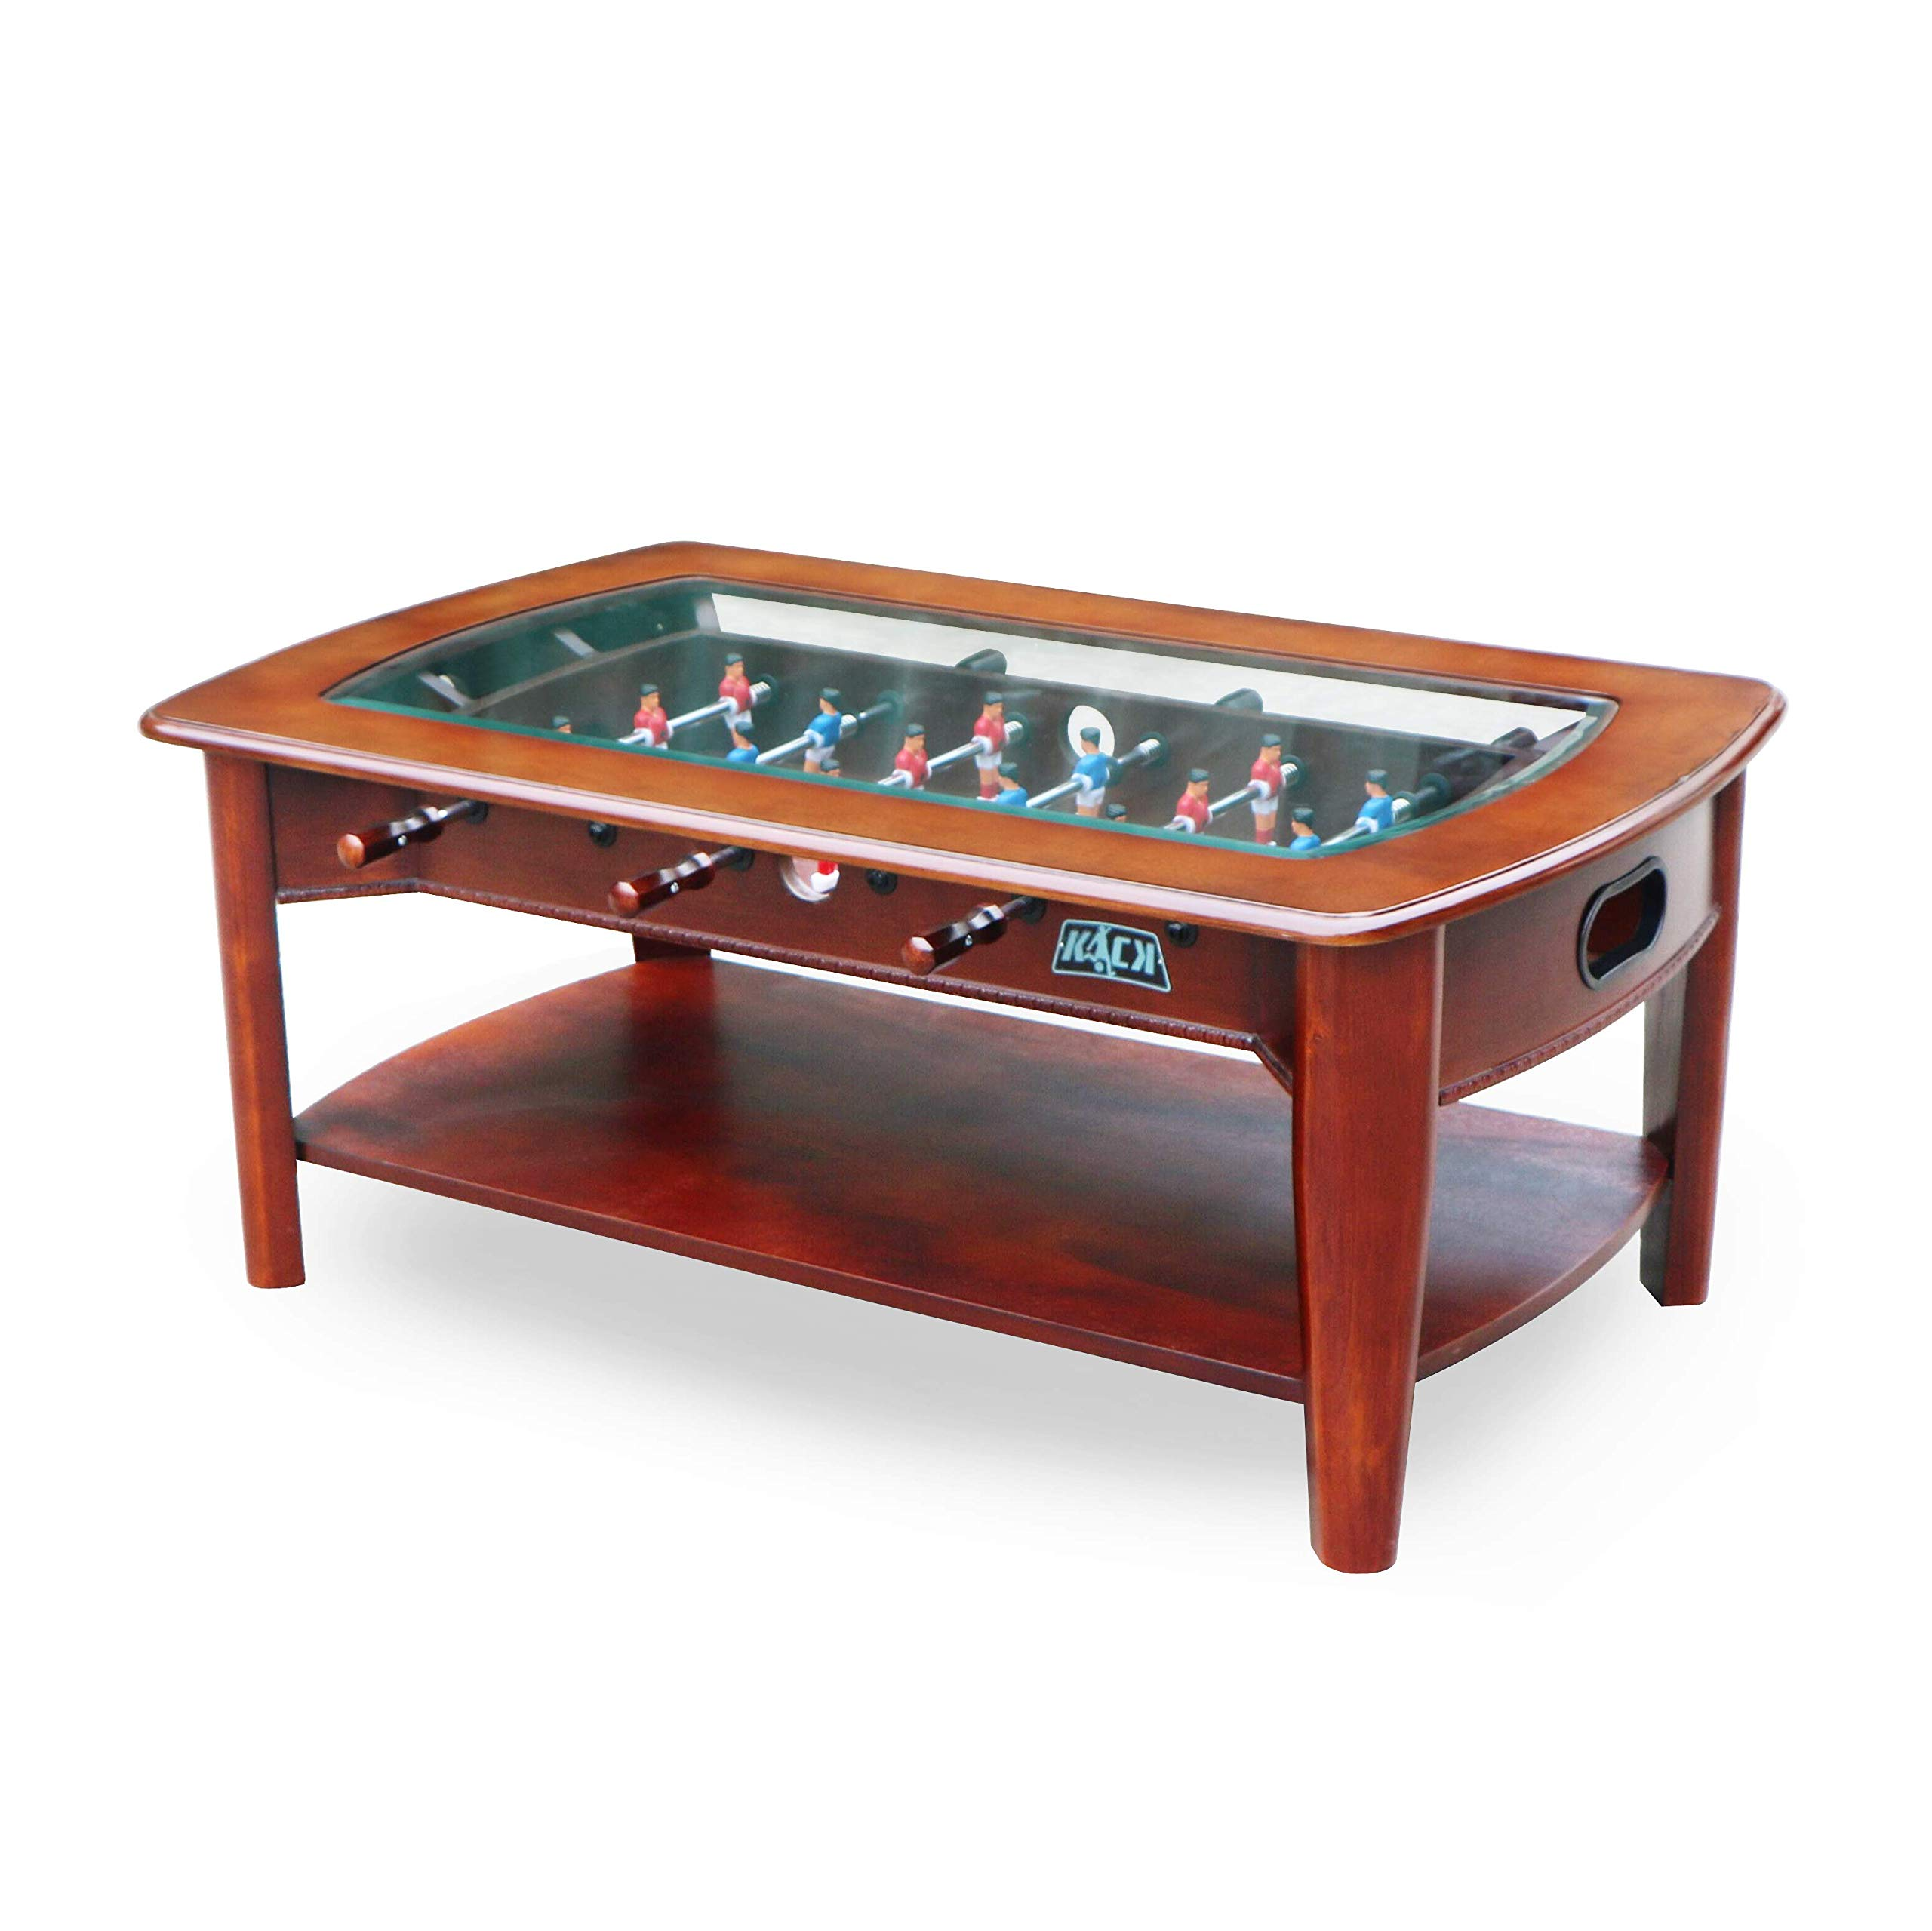 KICK Java 48″ in Foosball Coffee Table by KICK